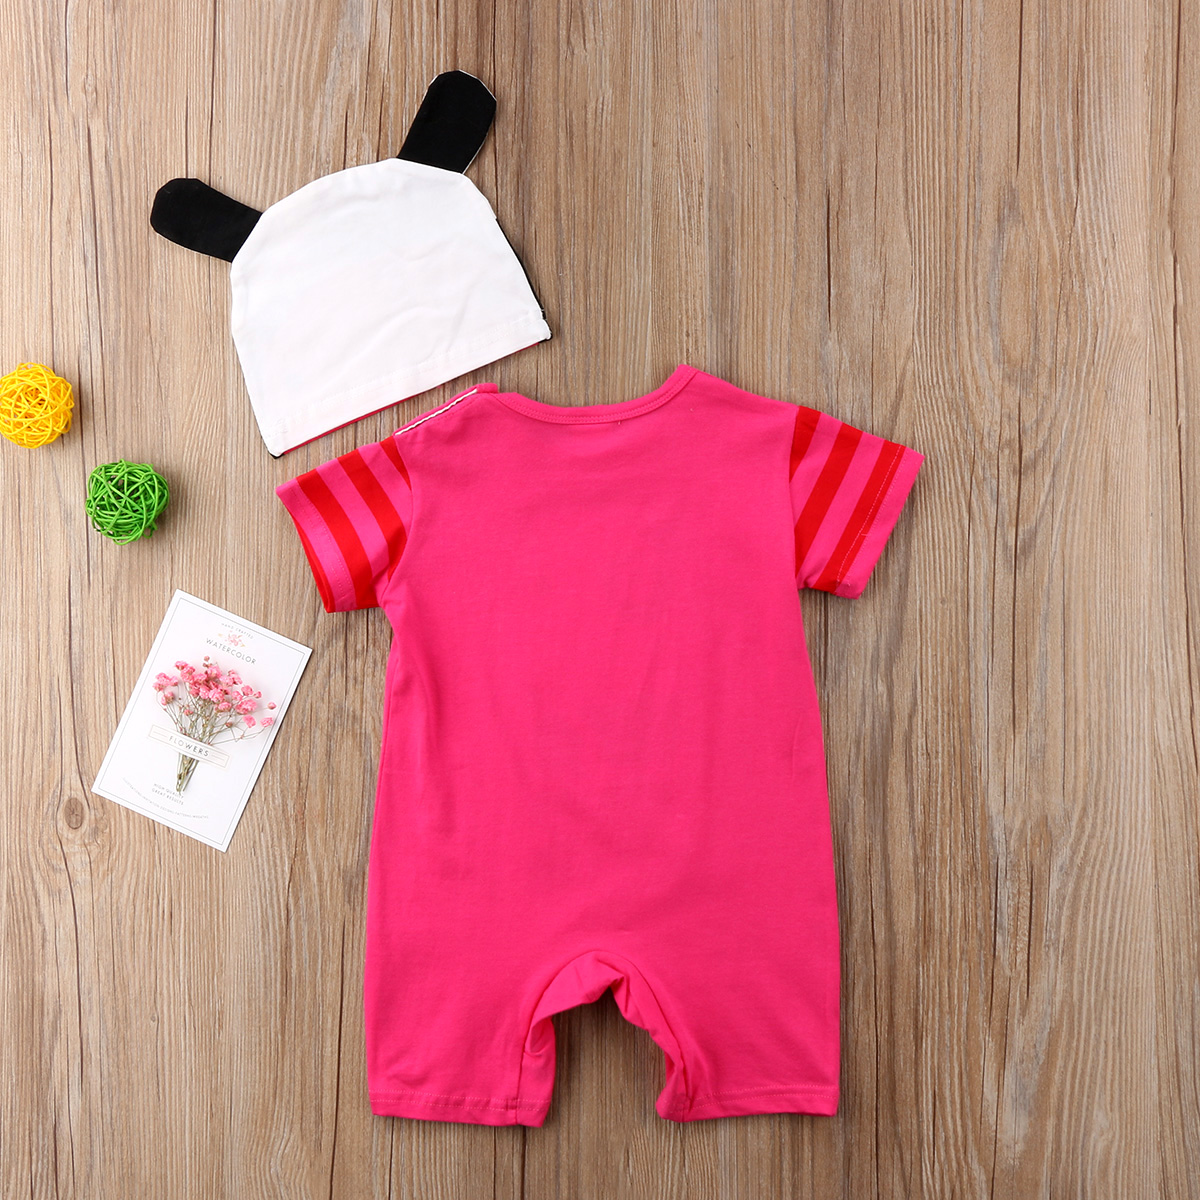 CANIS 2Pcs Lovely Baby Clothing Newborn Infant Baby Girl Boy Romper 3D Cows Short Sleeve Romper Hat Jumpsuit Clothes